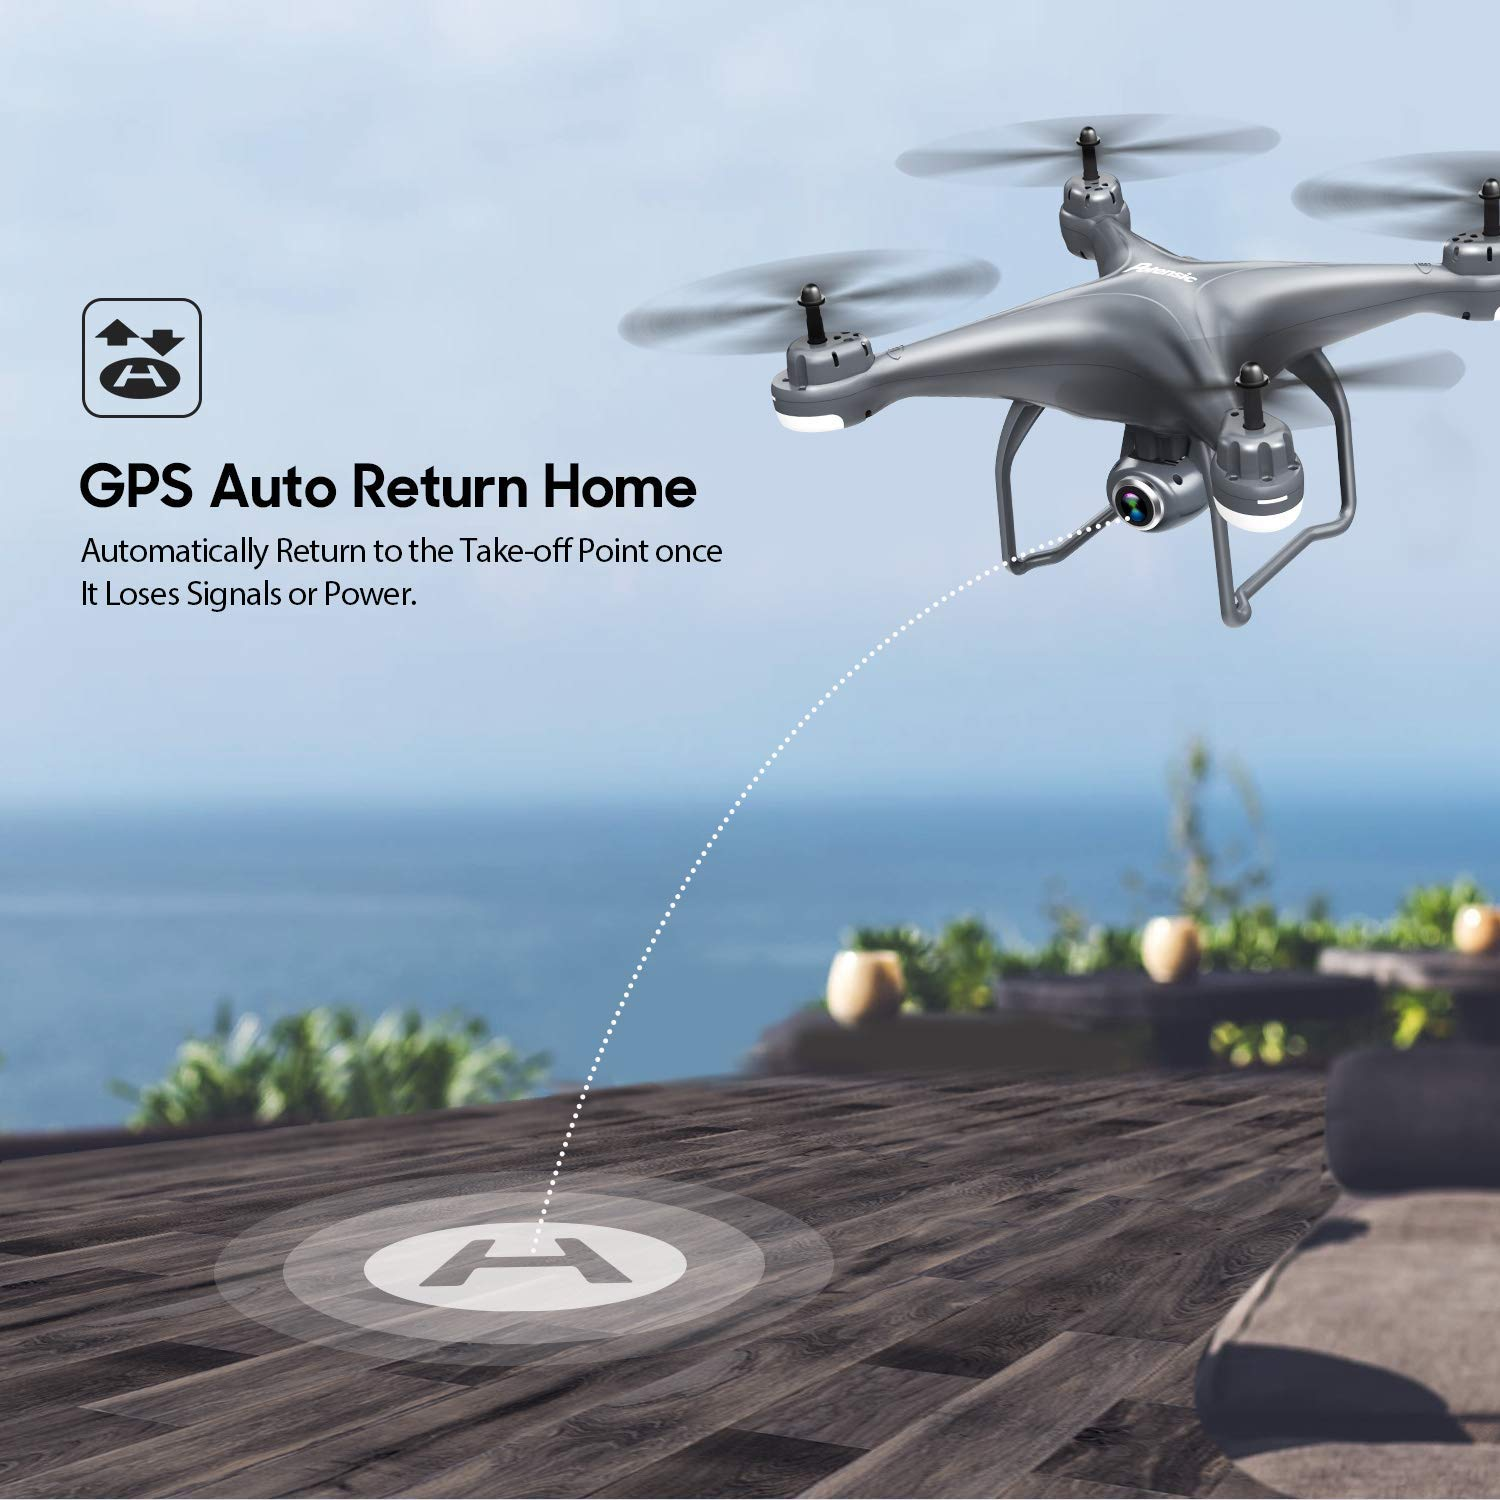 Potensic T25 GPS Drone, FPV RC Drone with Camera 1080P HD WiFi Live Video, Auto Return Home, Altitude Hold, Follow Me and Carrying Case by Potensic (Image #4)